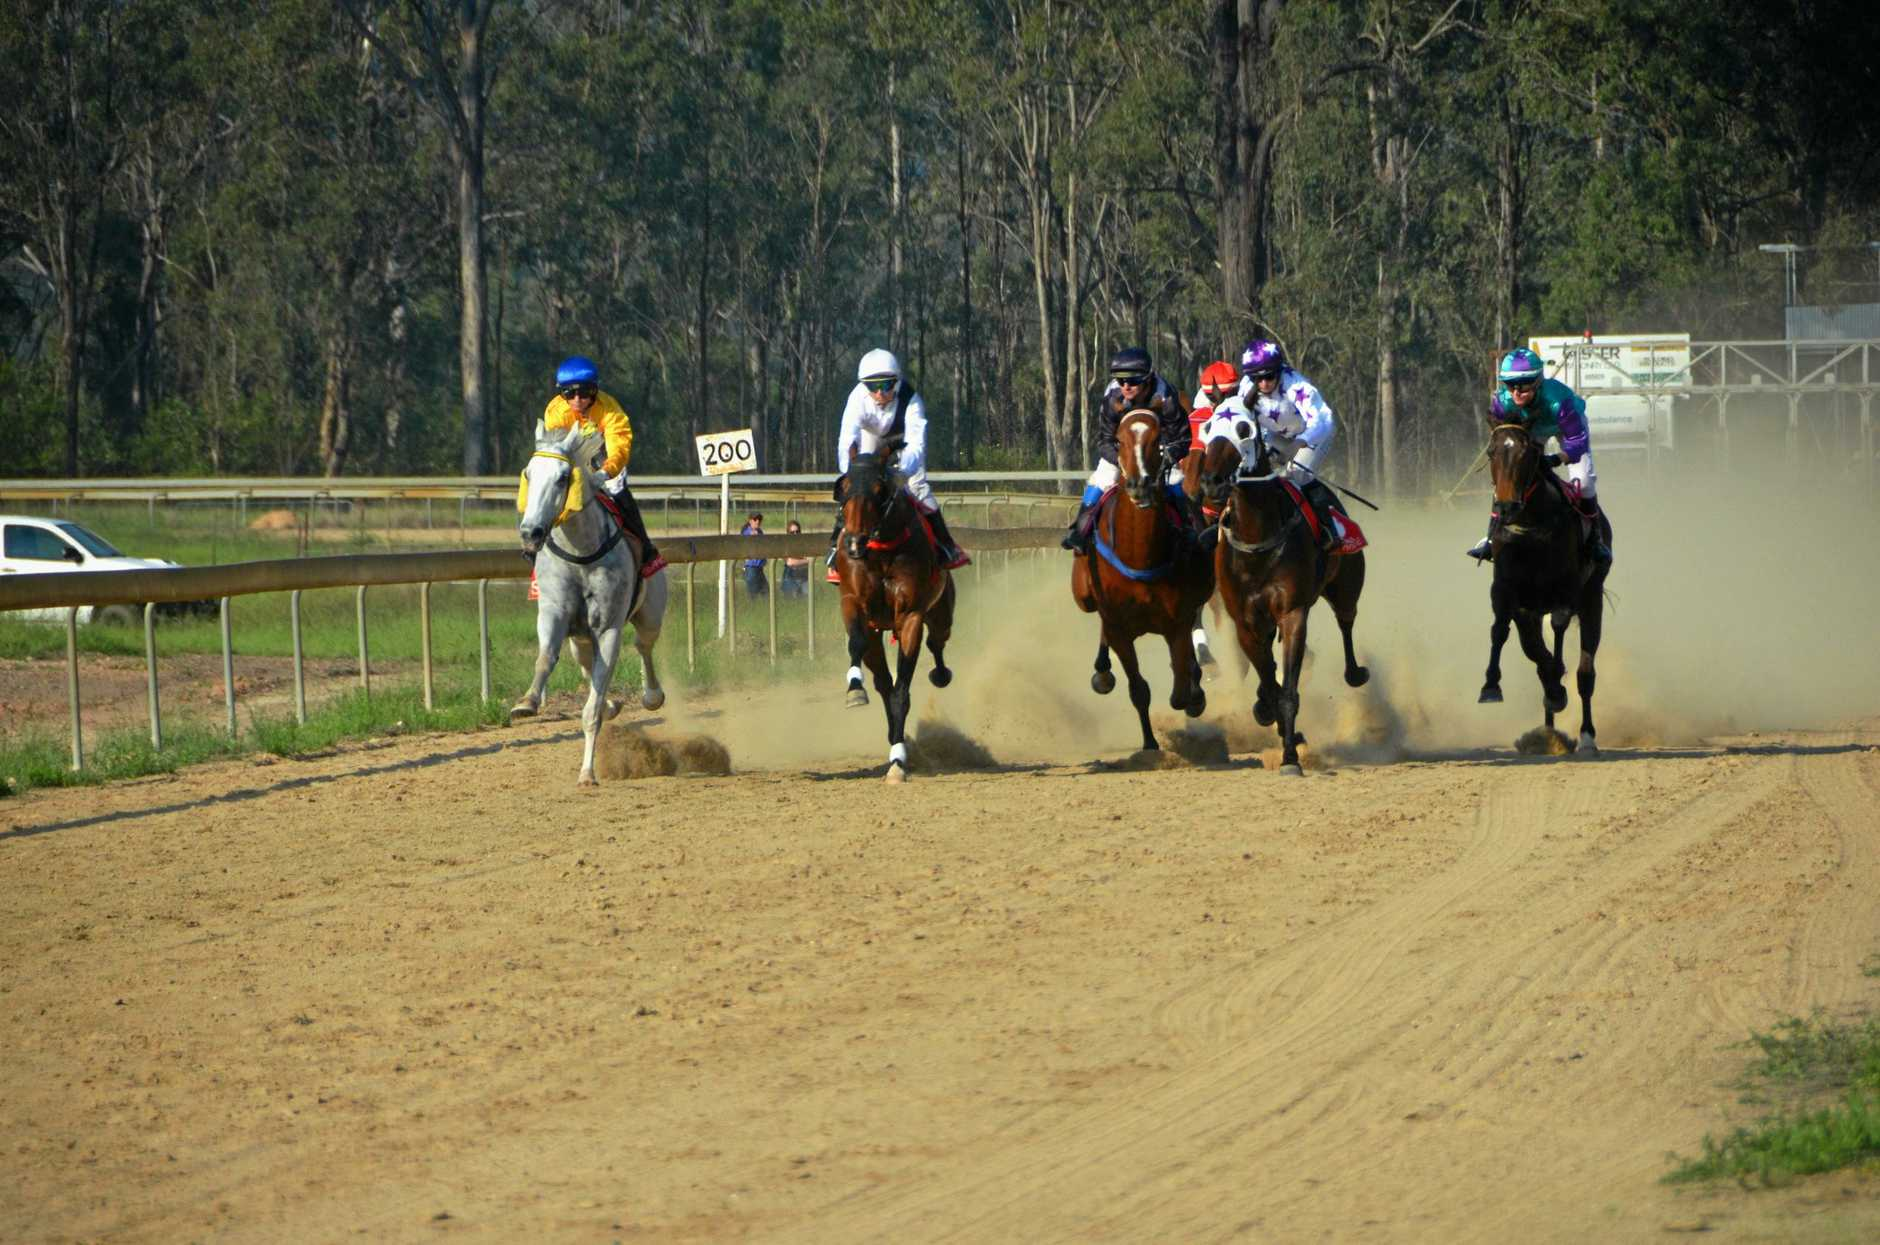 Horses were fast out of the gates in the Wondai Cup race in July.